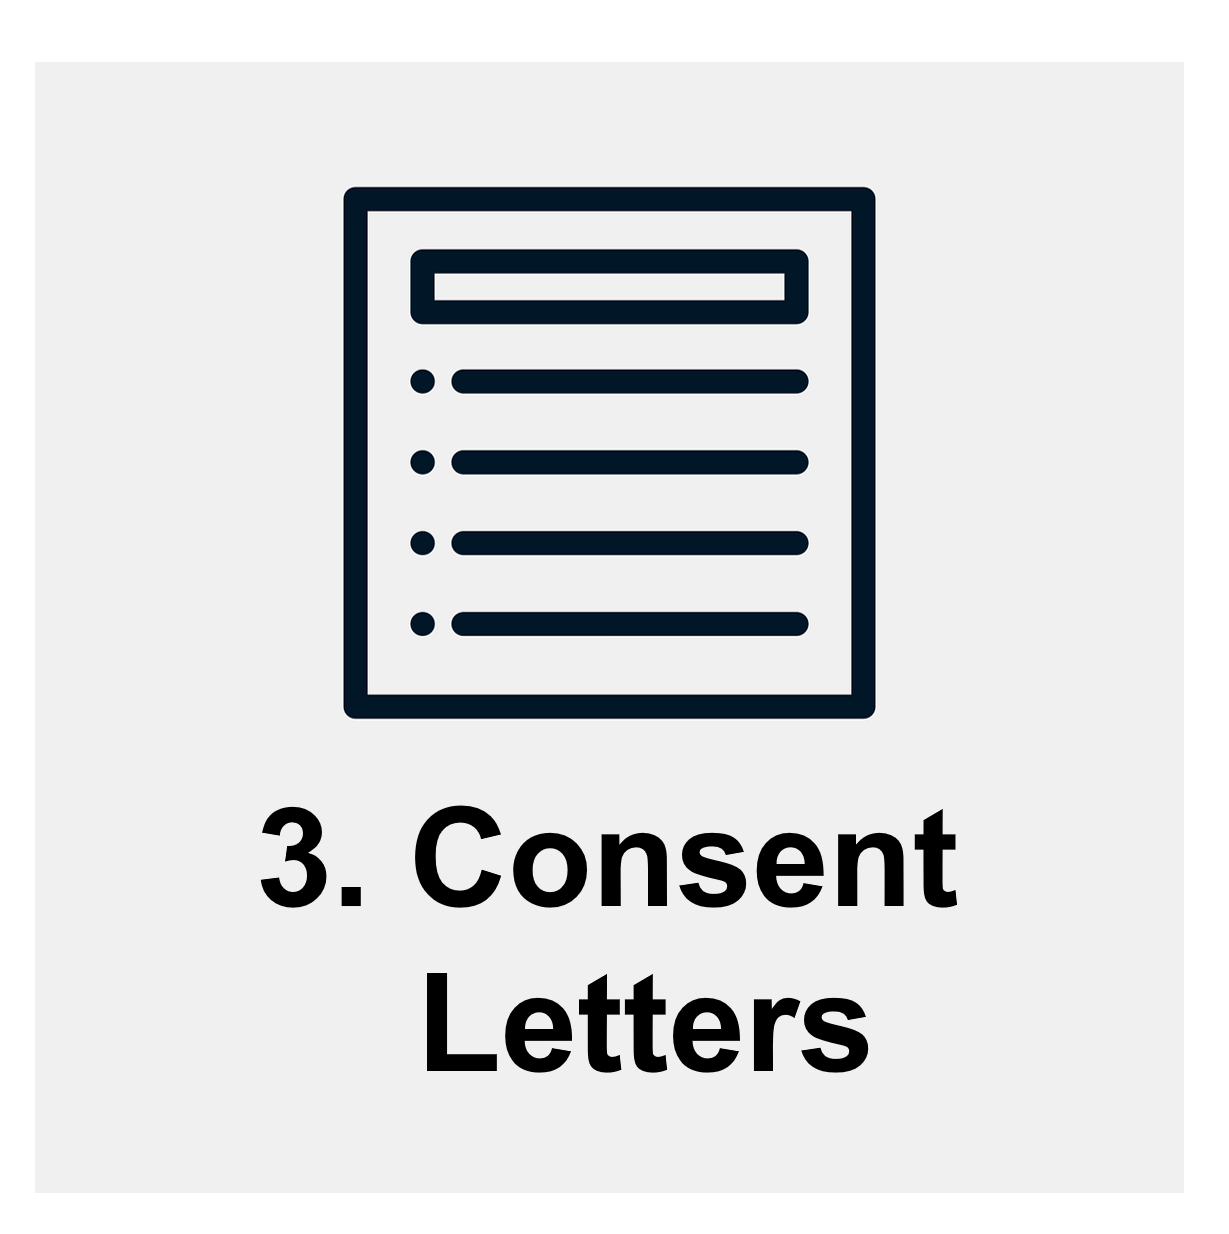 Session #3: Consent letter. Links to schedule for group sessions on consent letters